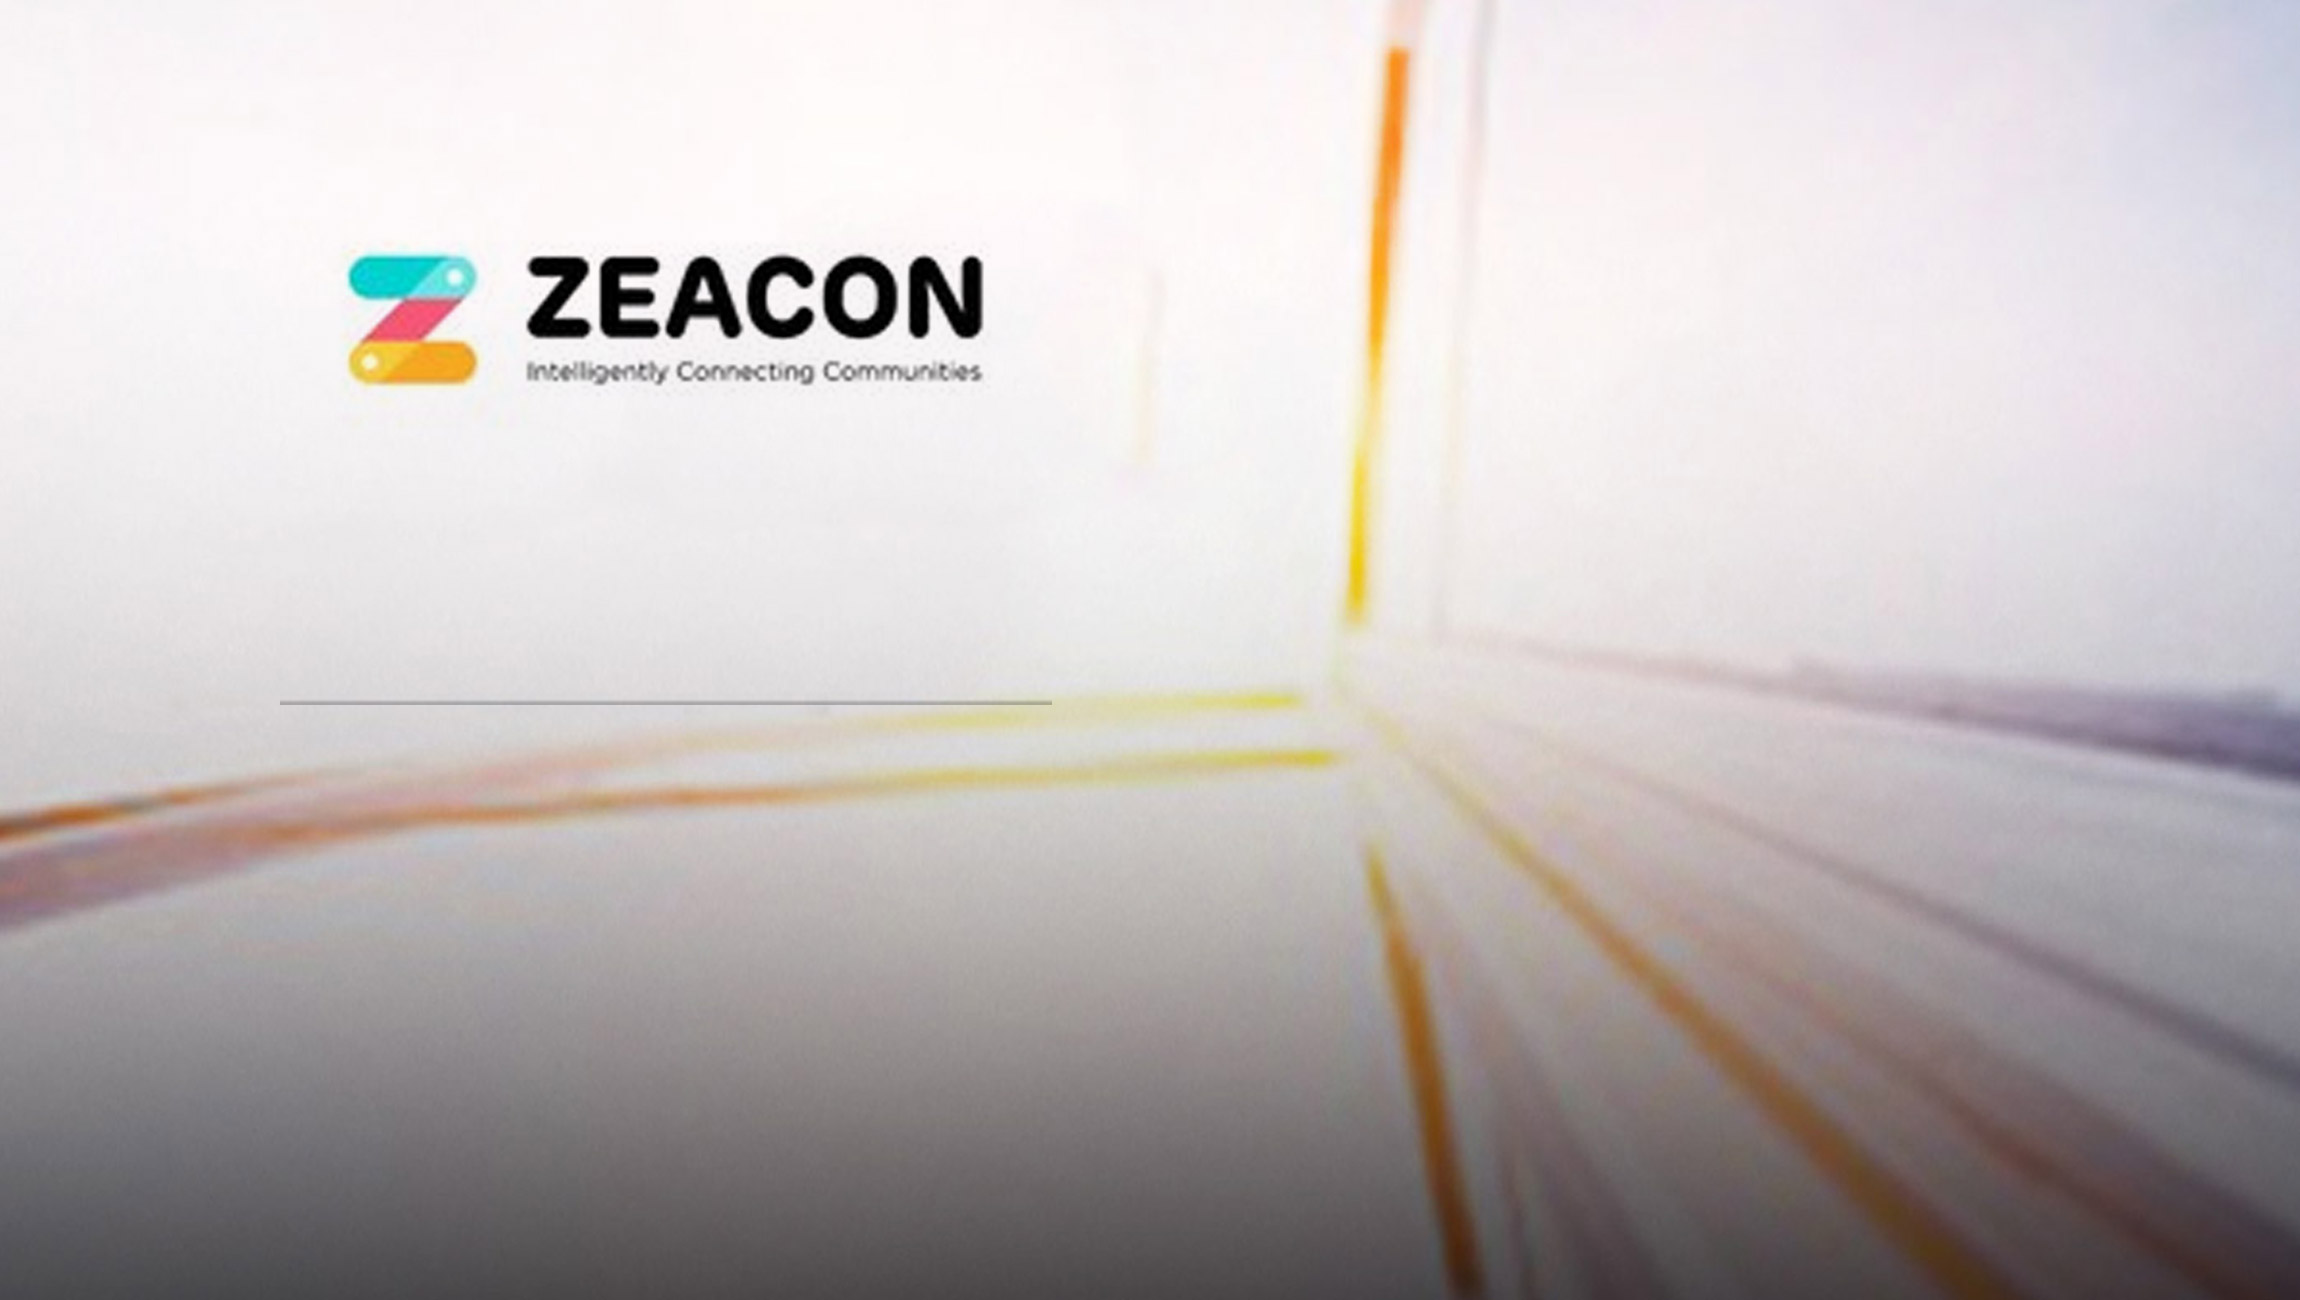 Seattle-based MBE Startup Zeacon organizes World-Famous Convention in Singapore… Virtually.